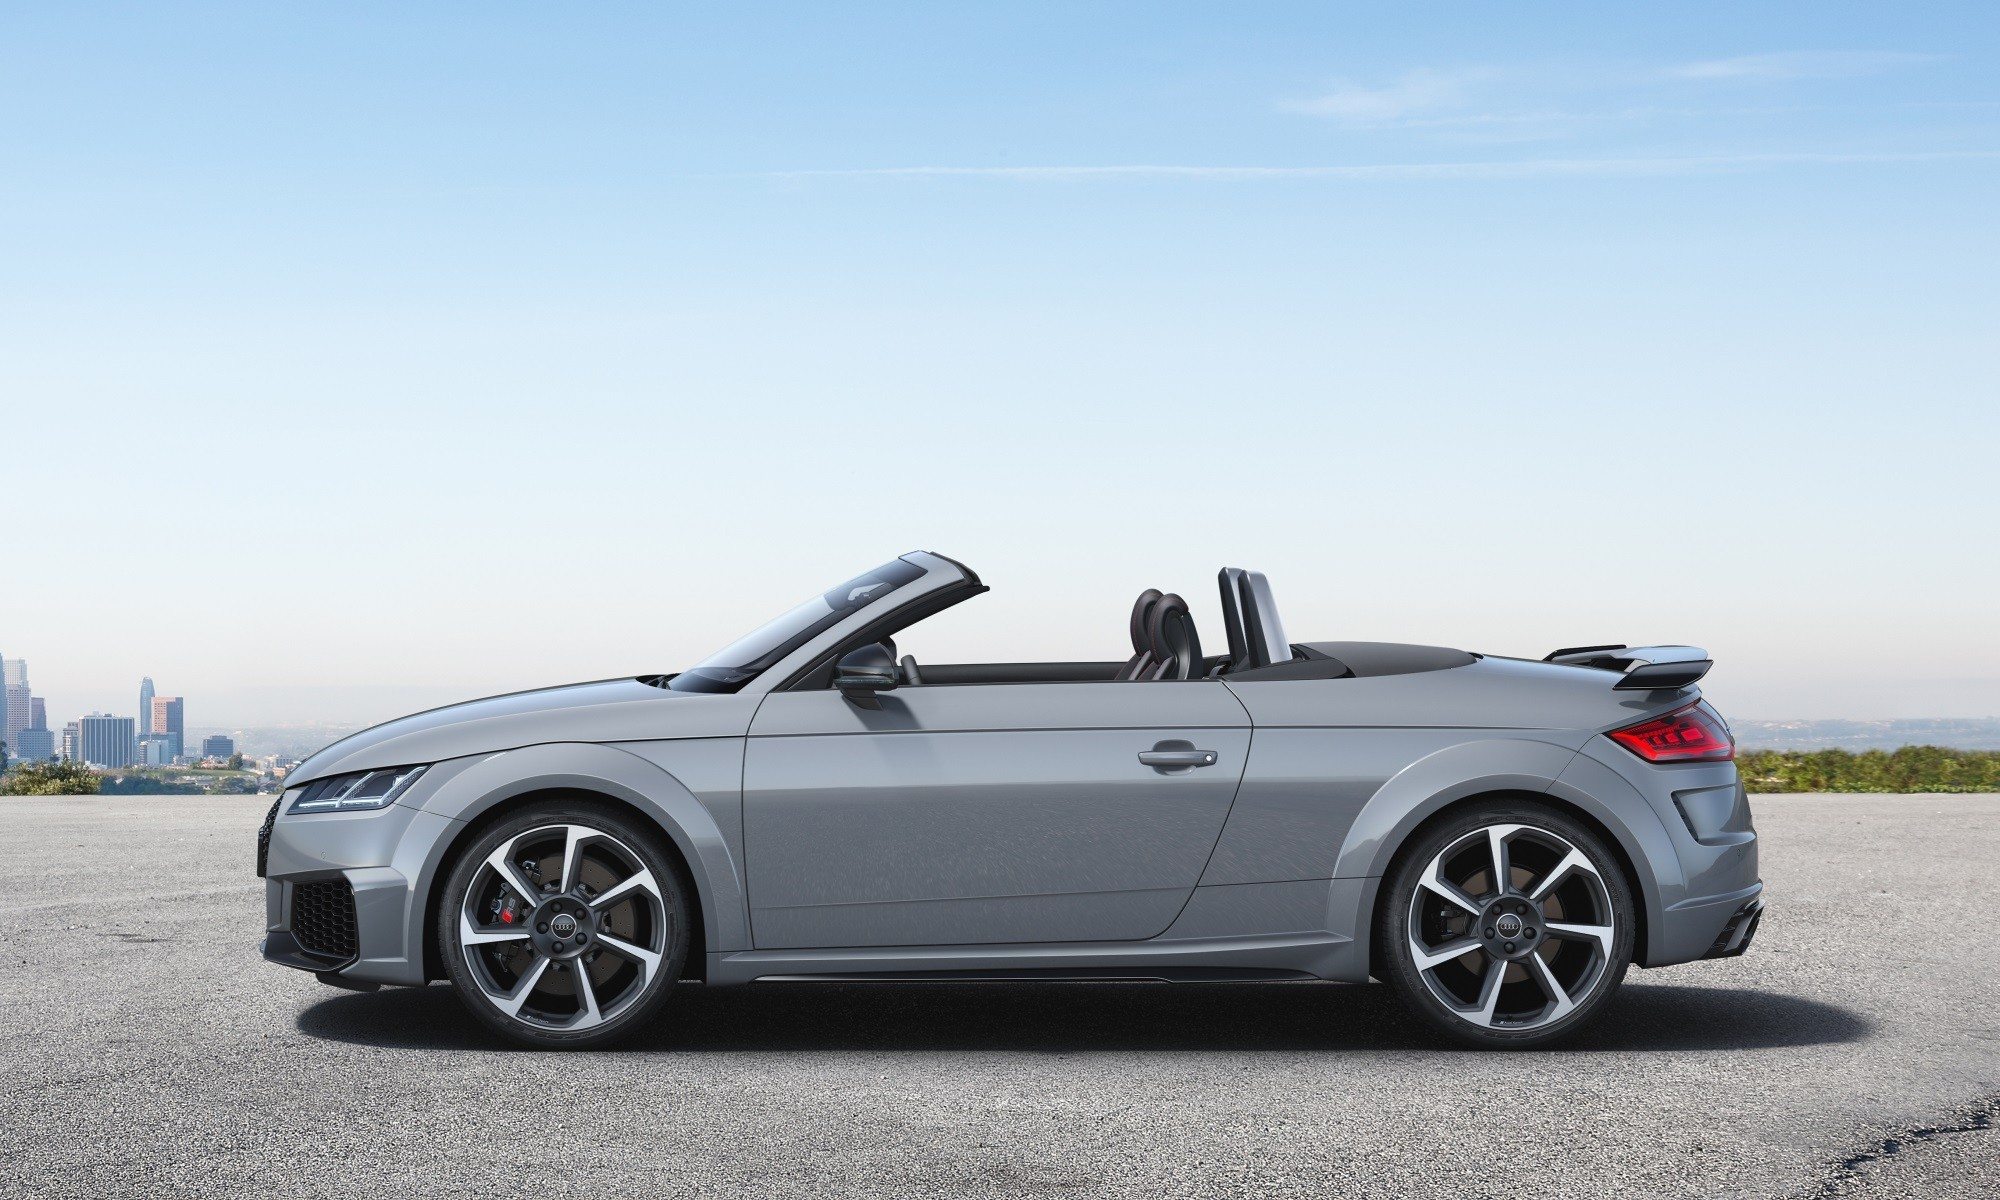 Refreshed Audi TT RS Roadster